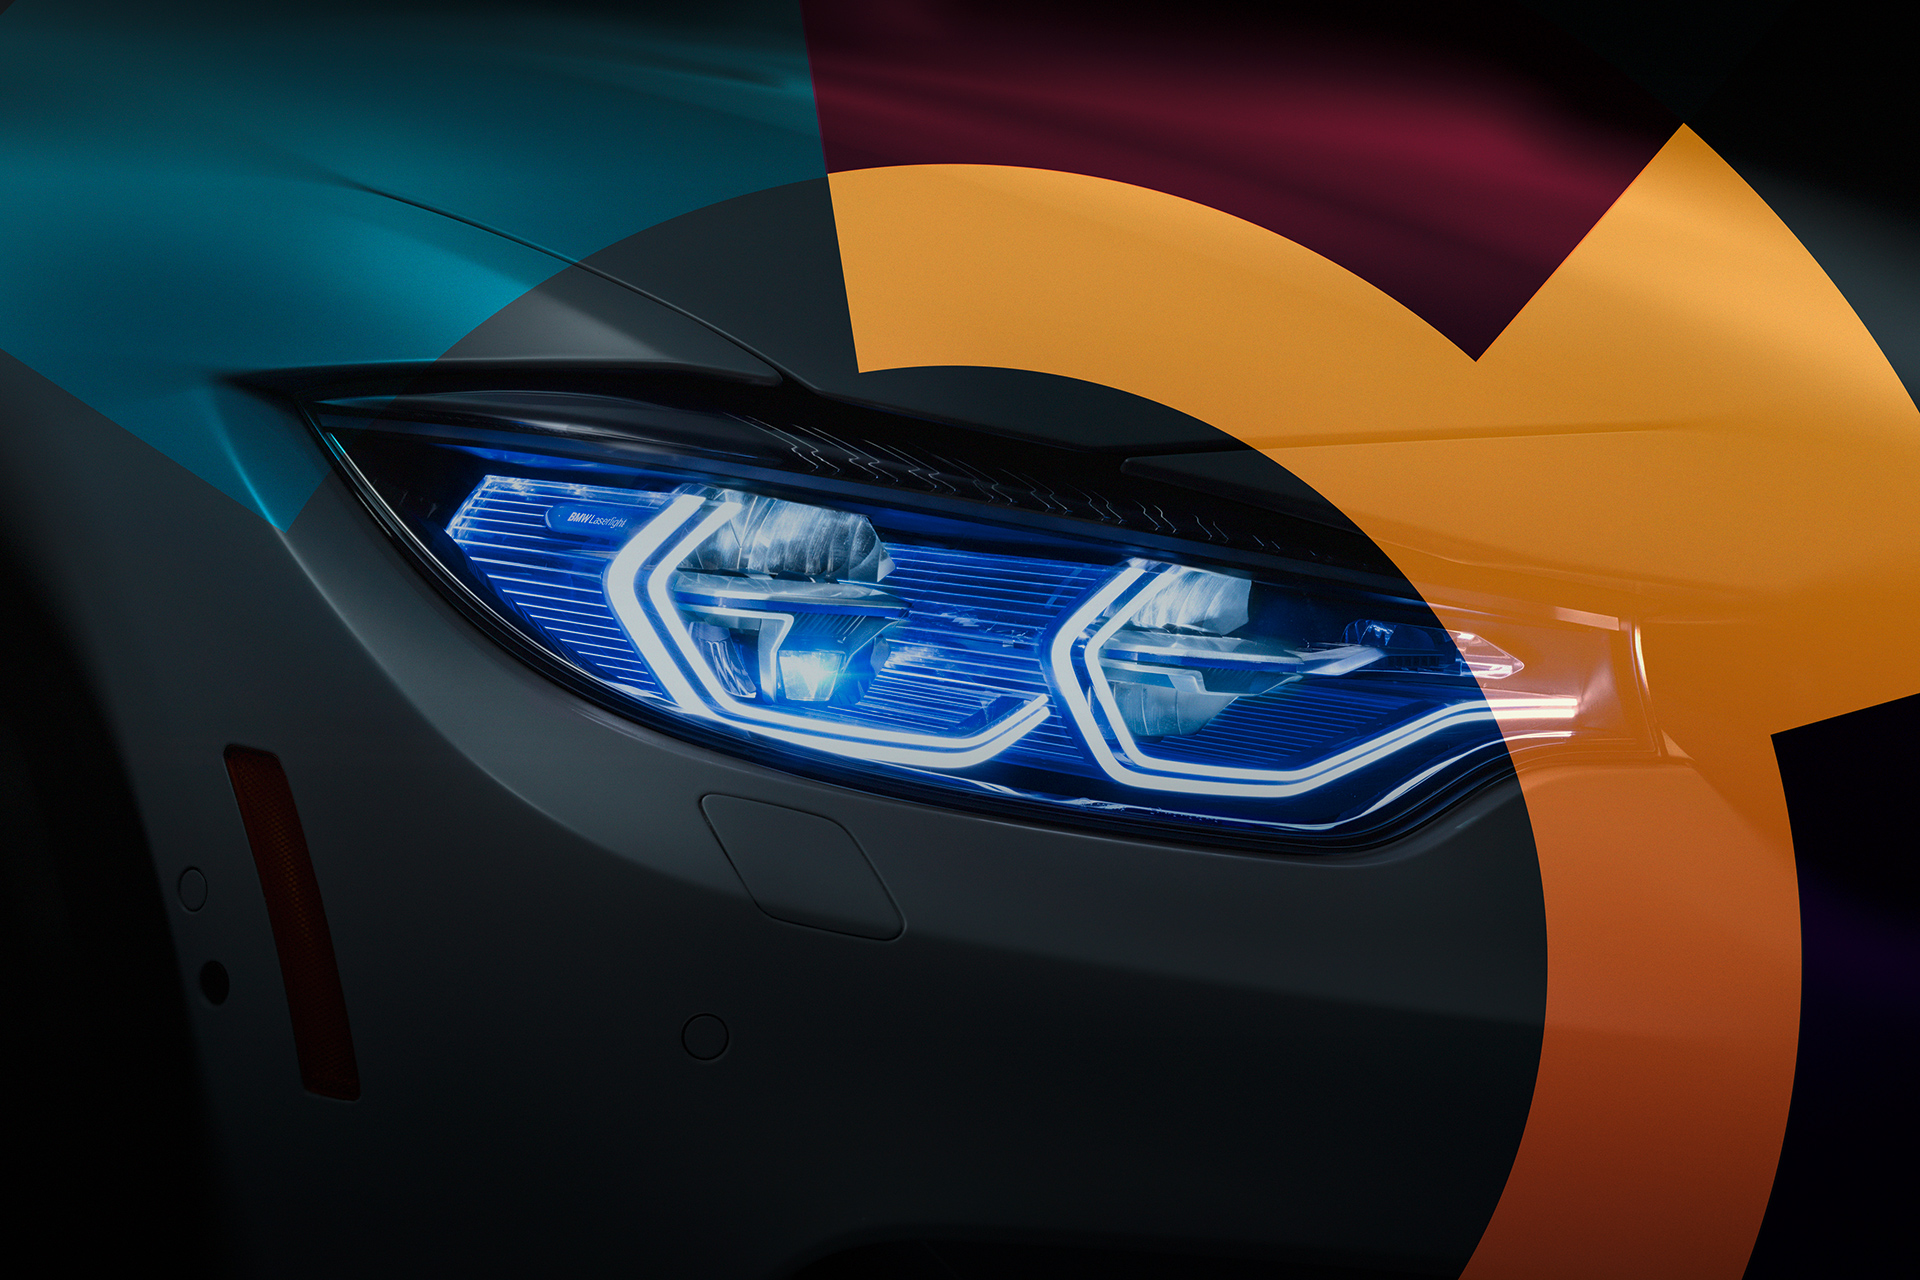 The Evenergi brand identity is a slick and ambitious entry into the renewables EV energy market.